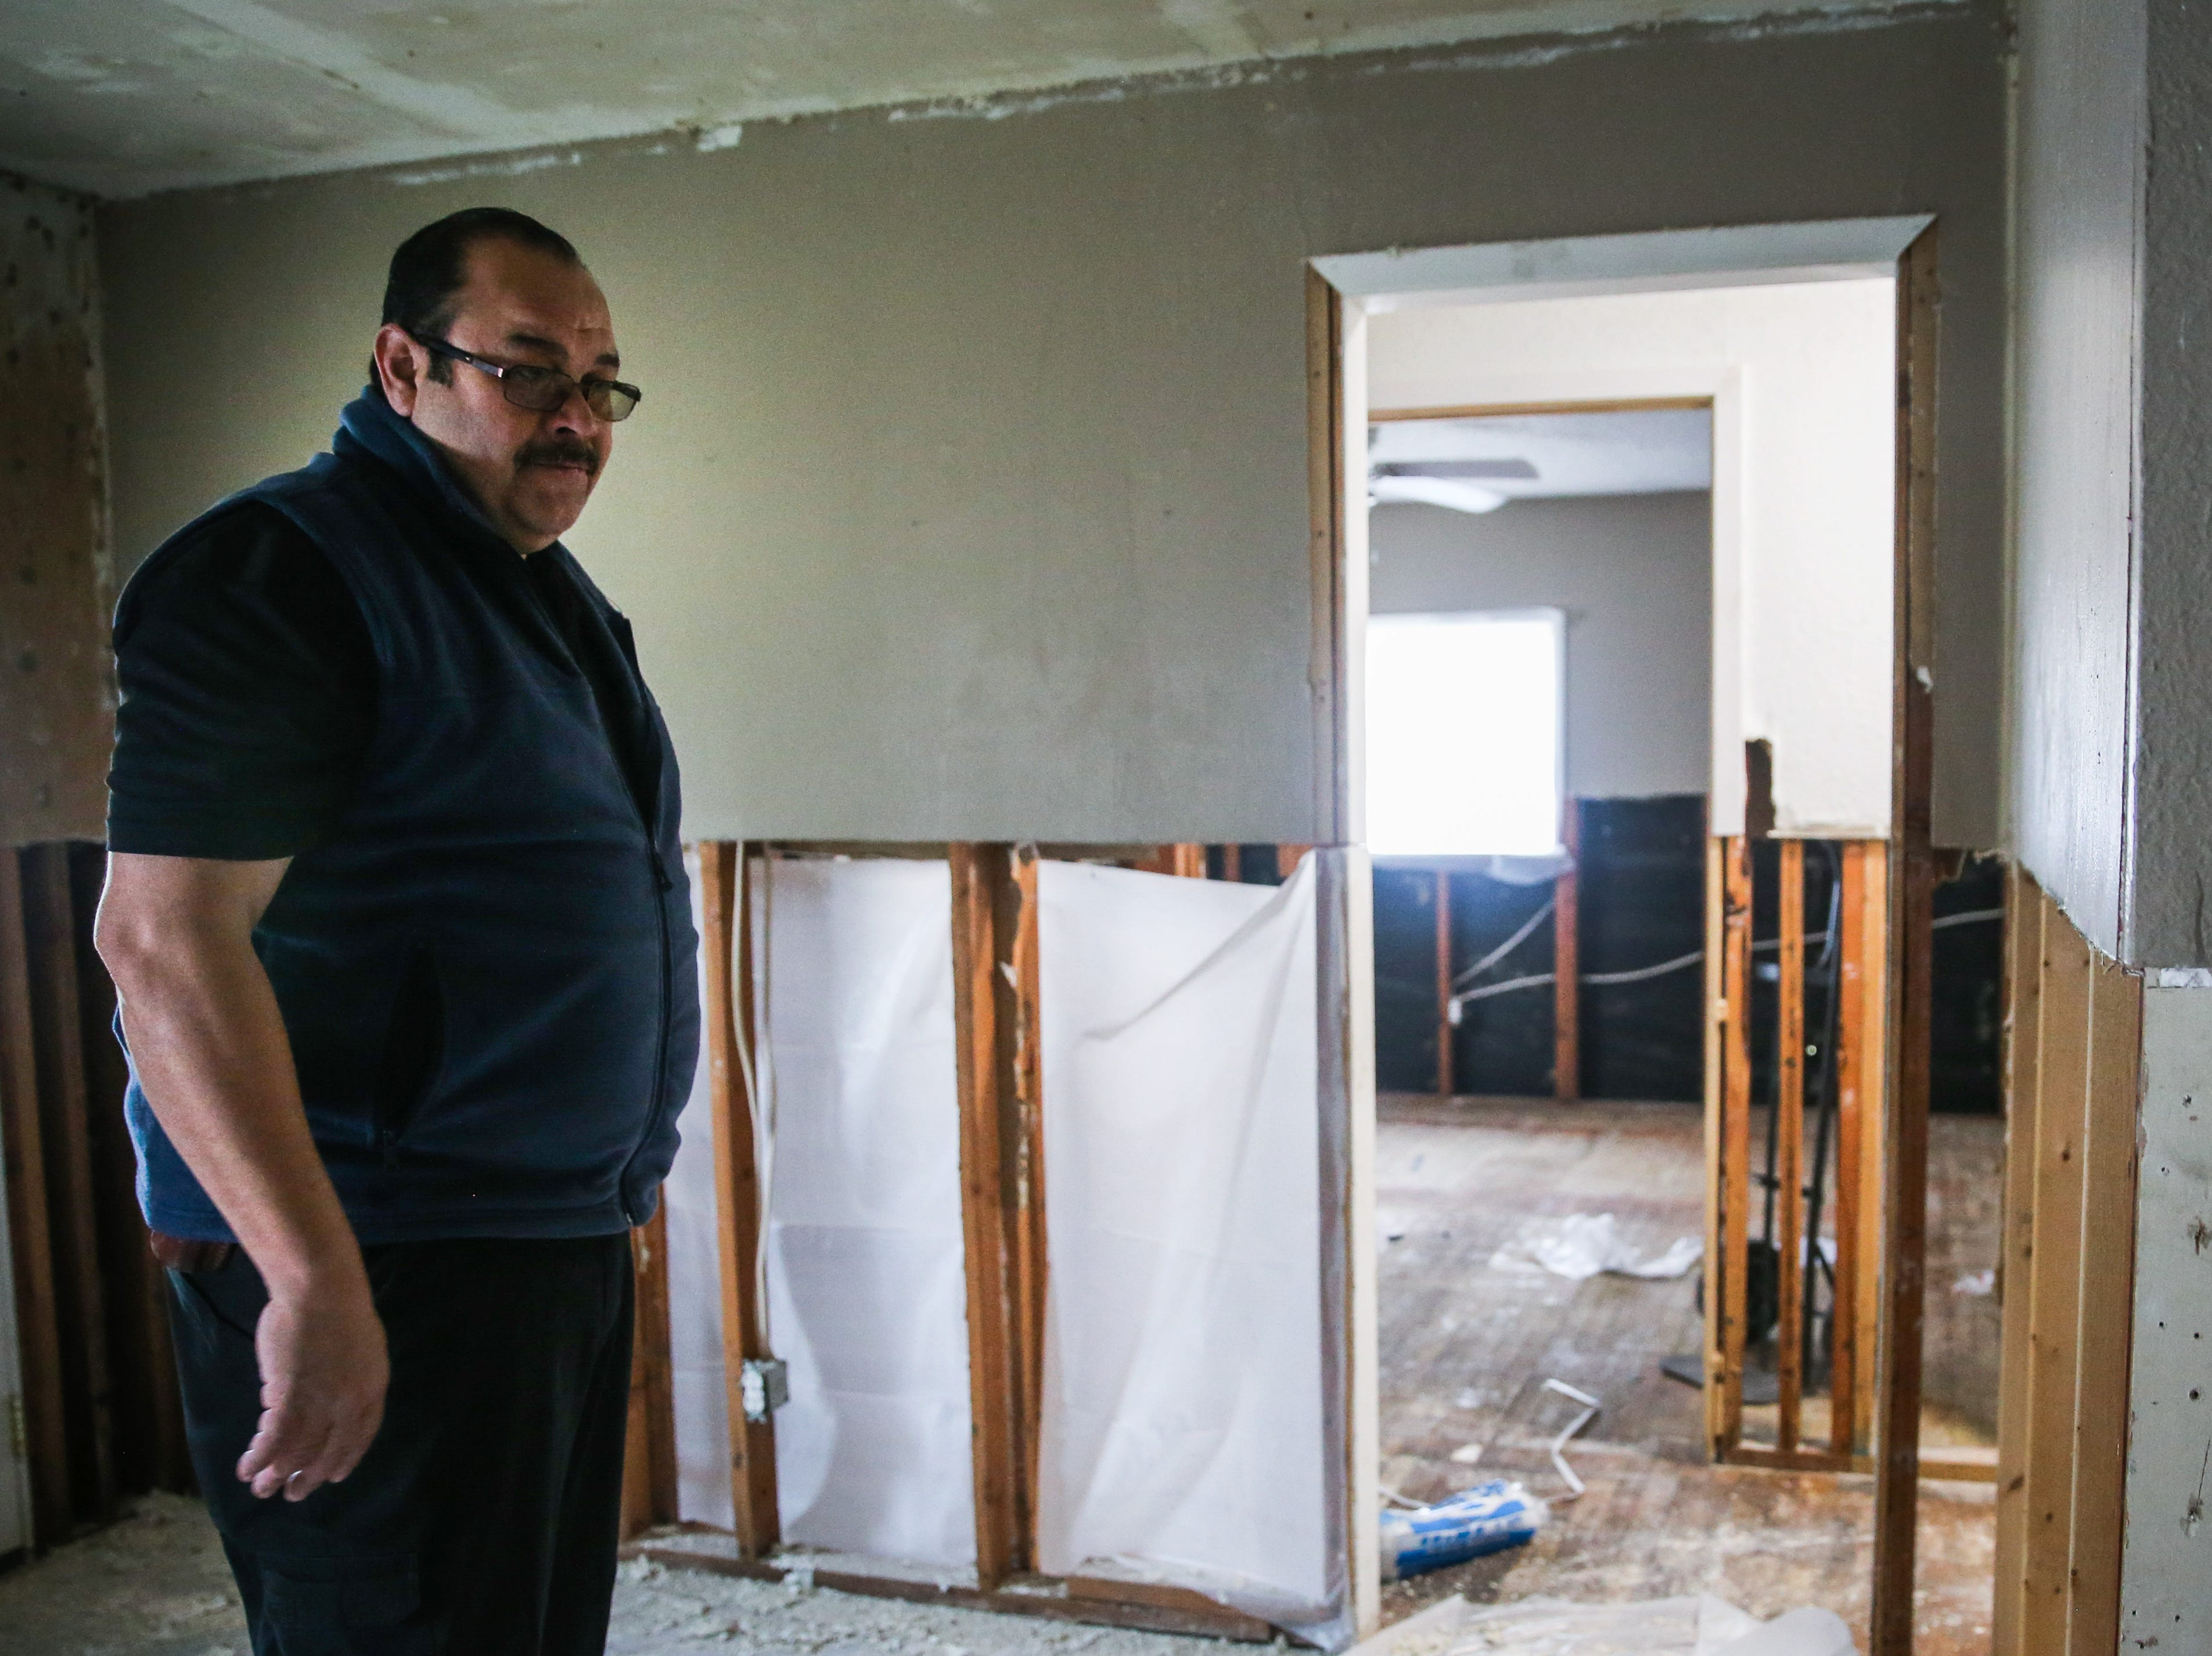 Sonora Police Chief Arturo Fuentes inspects the damage in his home Nov. 8, 2018, after the Sept. 21 flood.